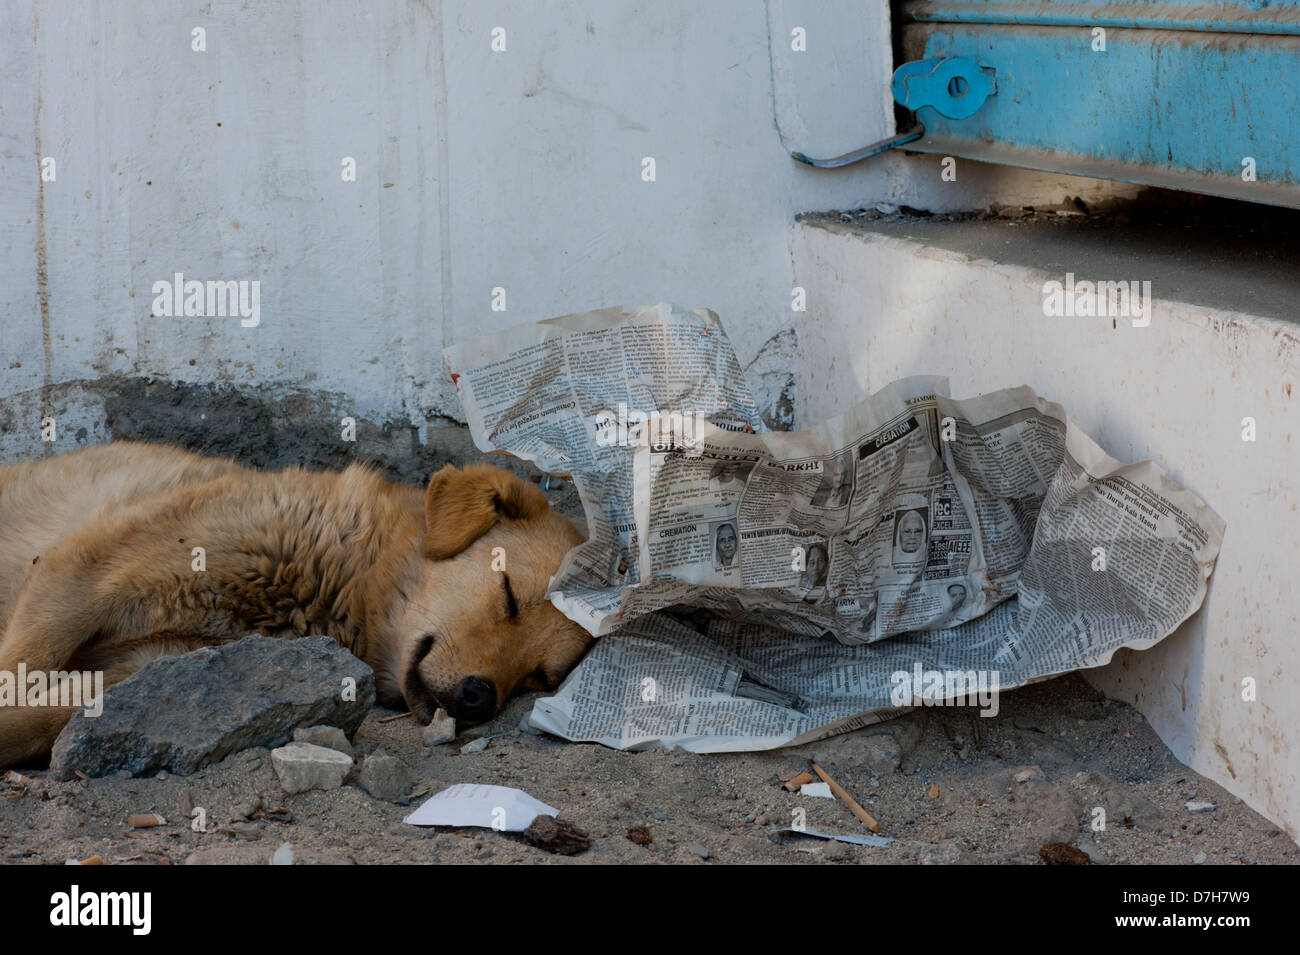 A cute stray dog sleeps with its head on some newspaper. - Stock Image